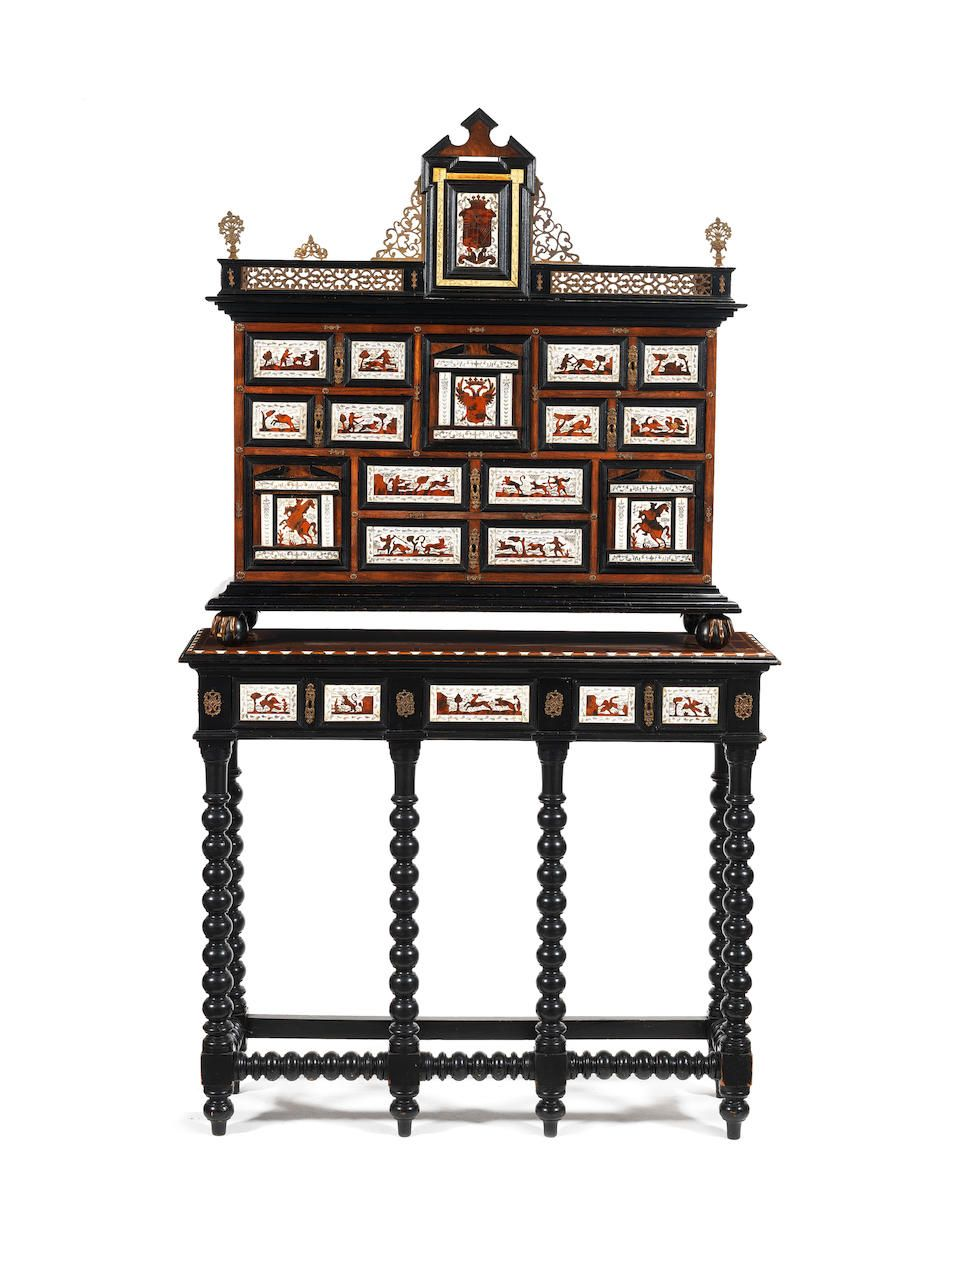 A Spanish Late 19th Century Baroque Style Gilt Metal Mounted Rosewood Ivory Tortoiseshell Parquetry And Ebonised Wood Cabinet On Stand In 2020 Schrank